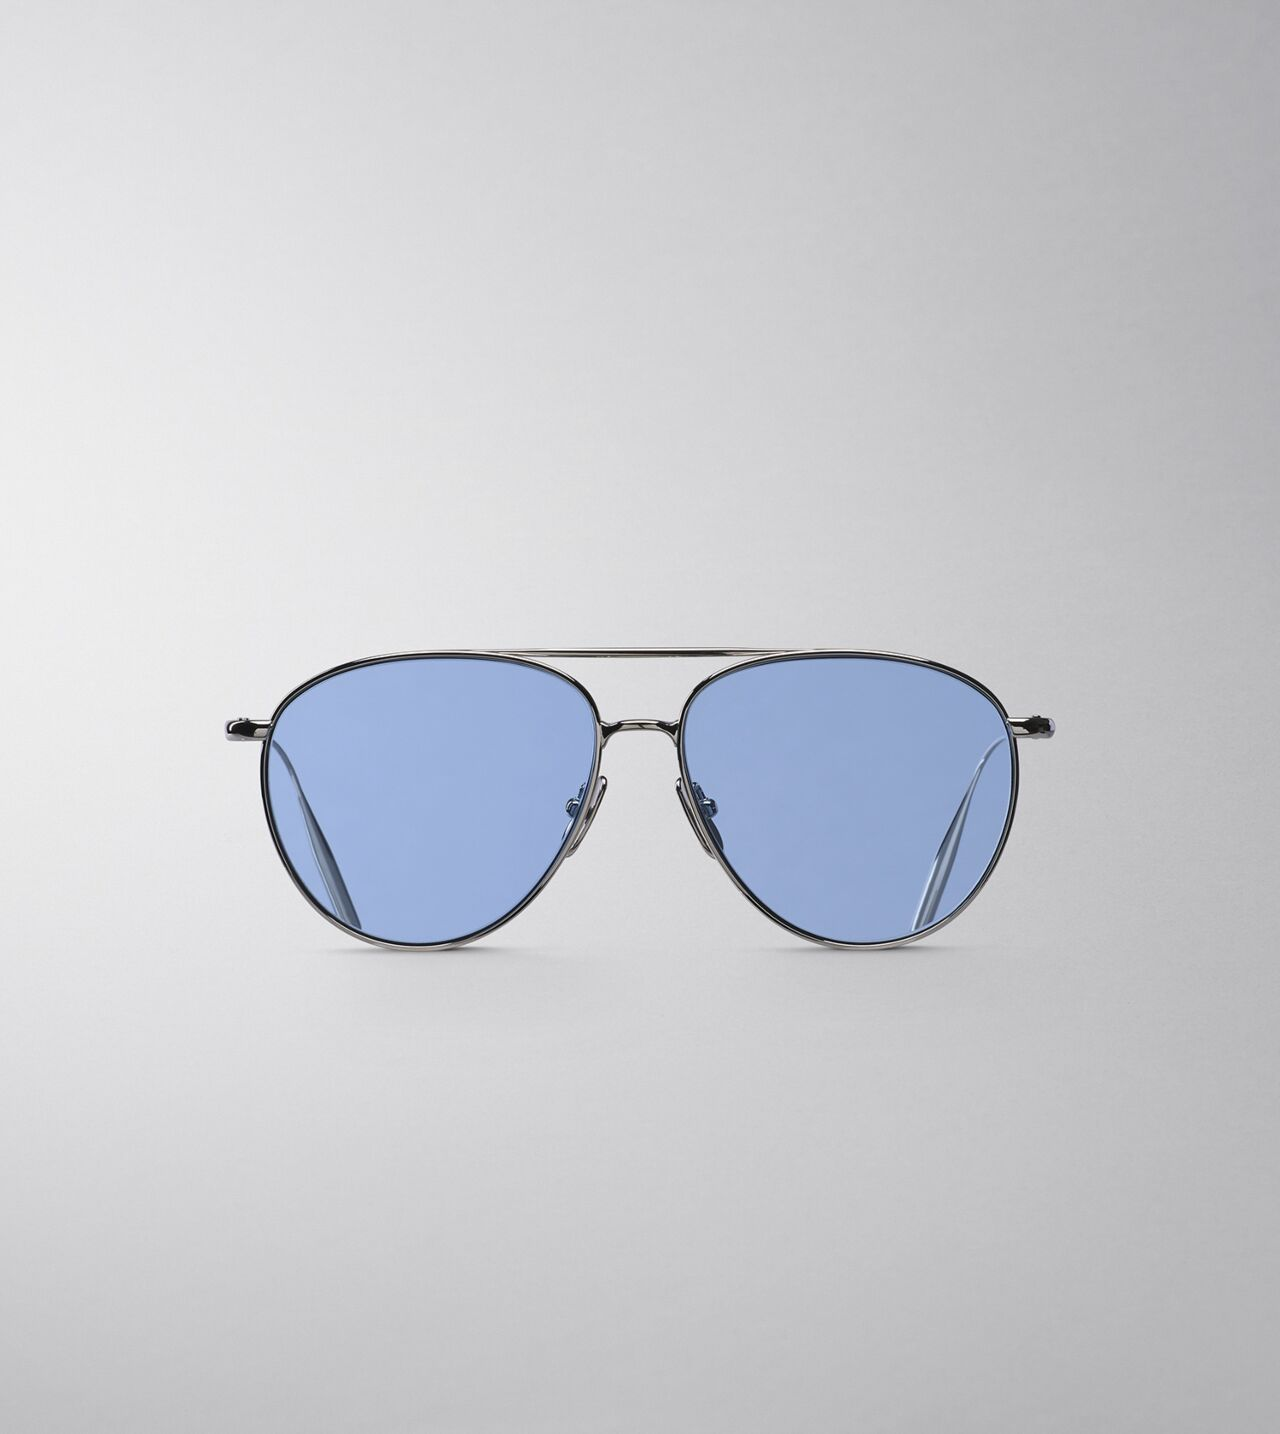 Picture of Byredo The Certified Pilot in Palladium blue